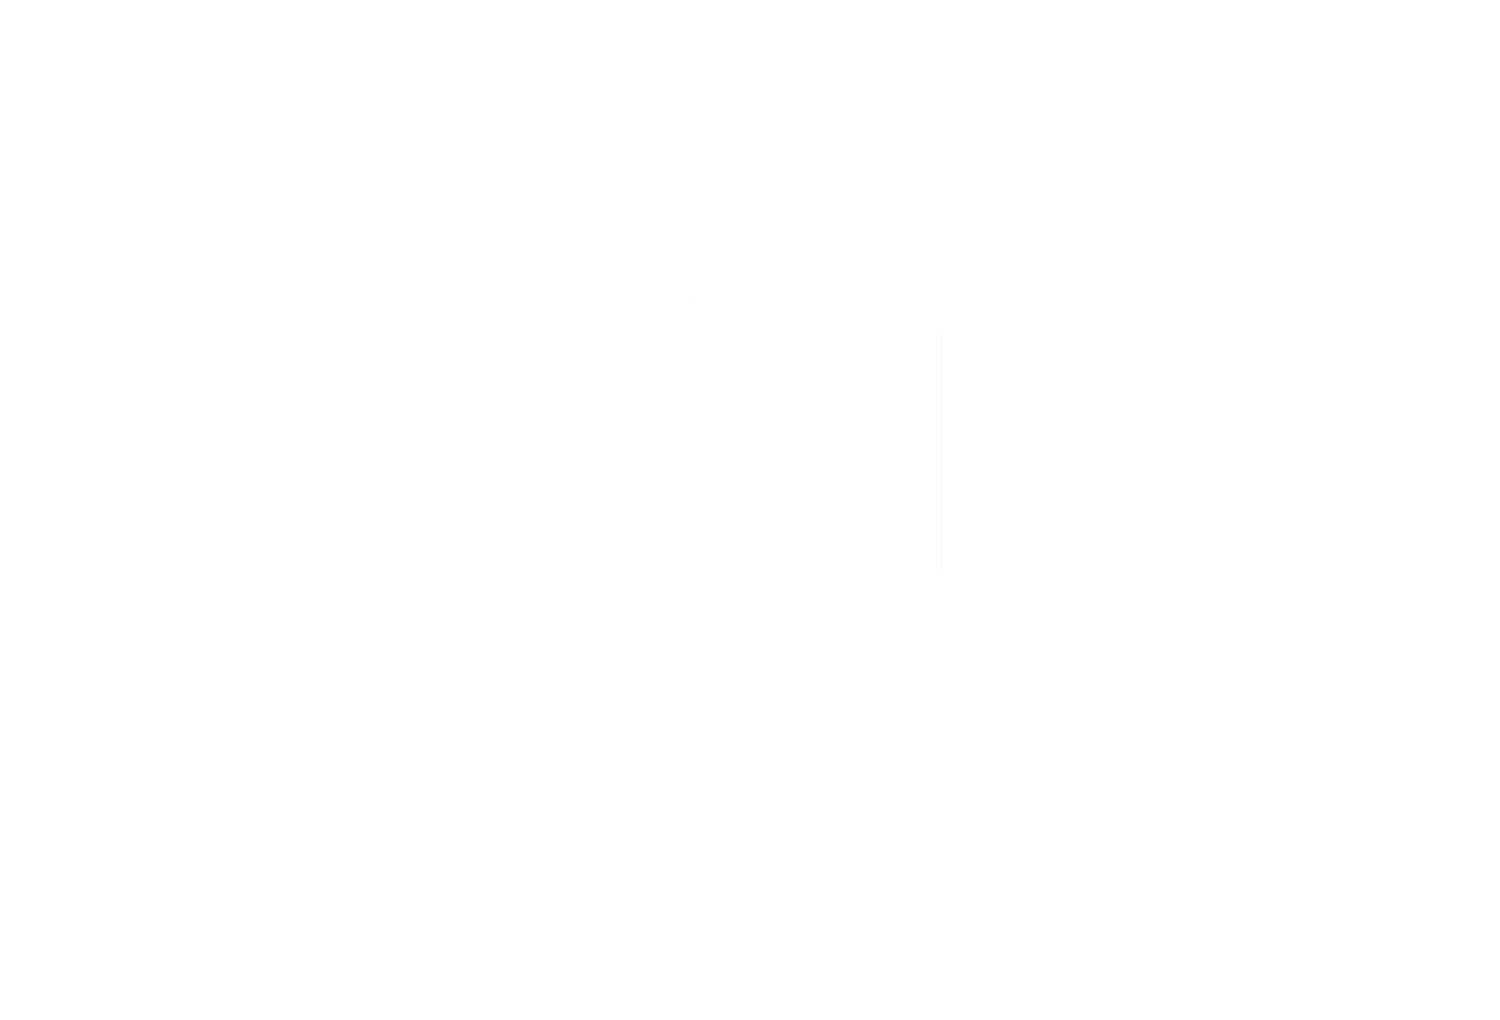 Regency Auction House